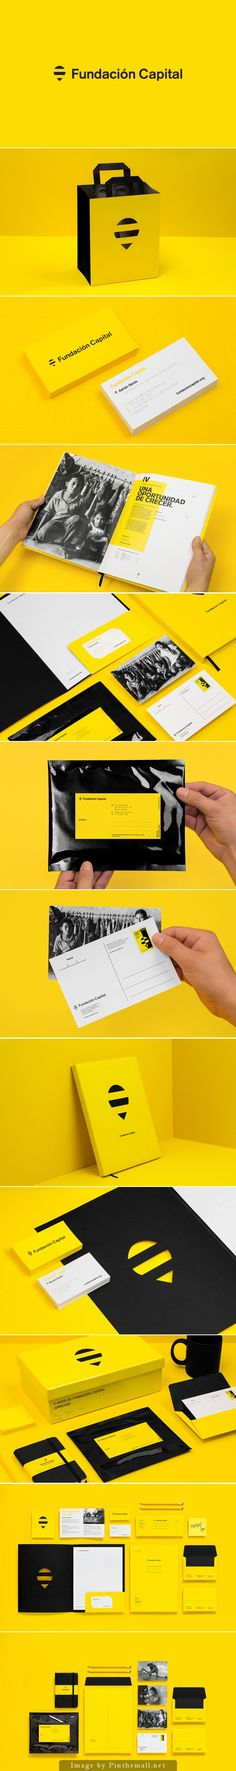 A yellow corporate identity design, with full branded stationary from business card to letterhead and visual merchandising. Corporate Design, Brand Identity Design, Corporate Identity, Visual Identity, Logo Design, Stationary Branding, Branding Agency, Stationery Design, Logo Branding